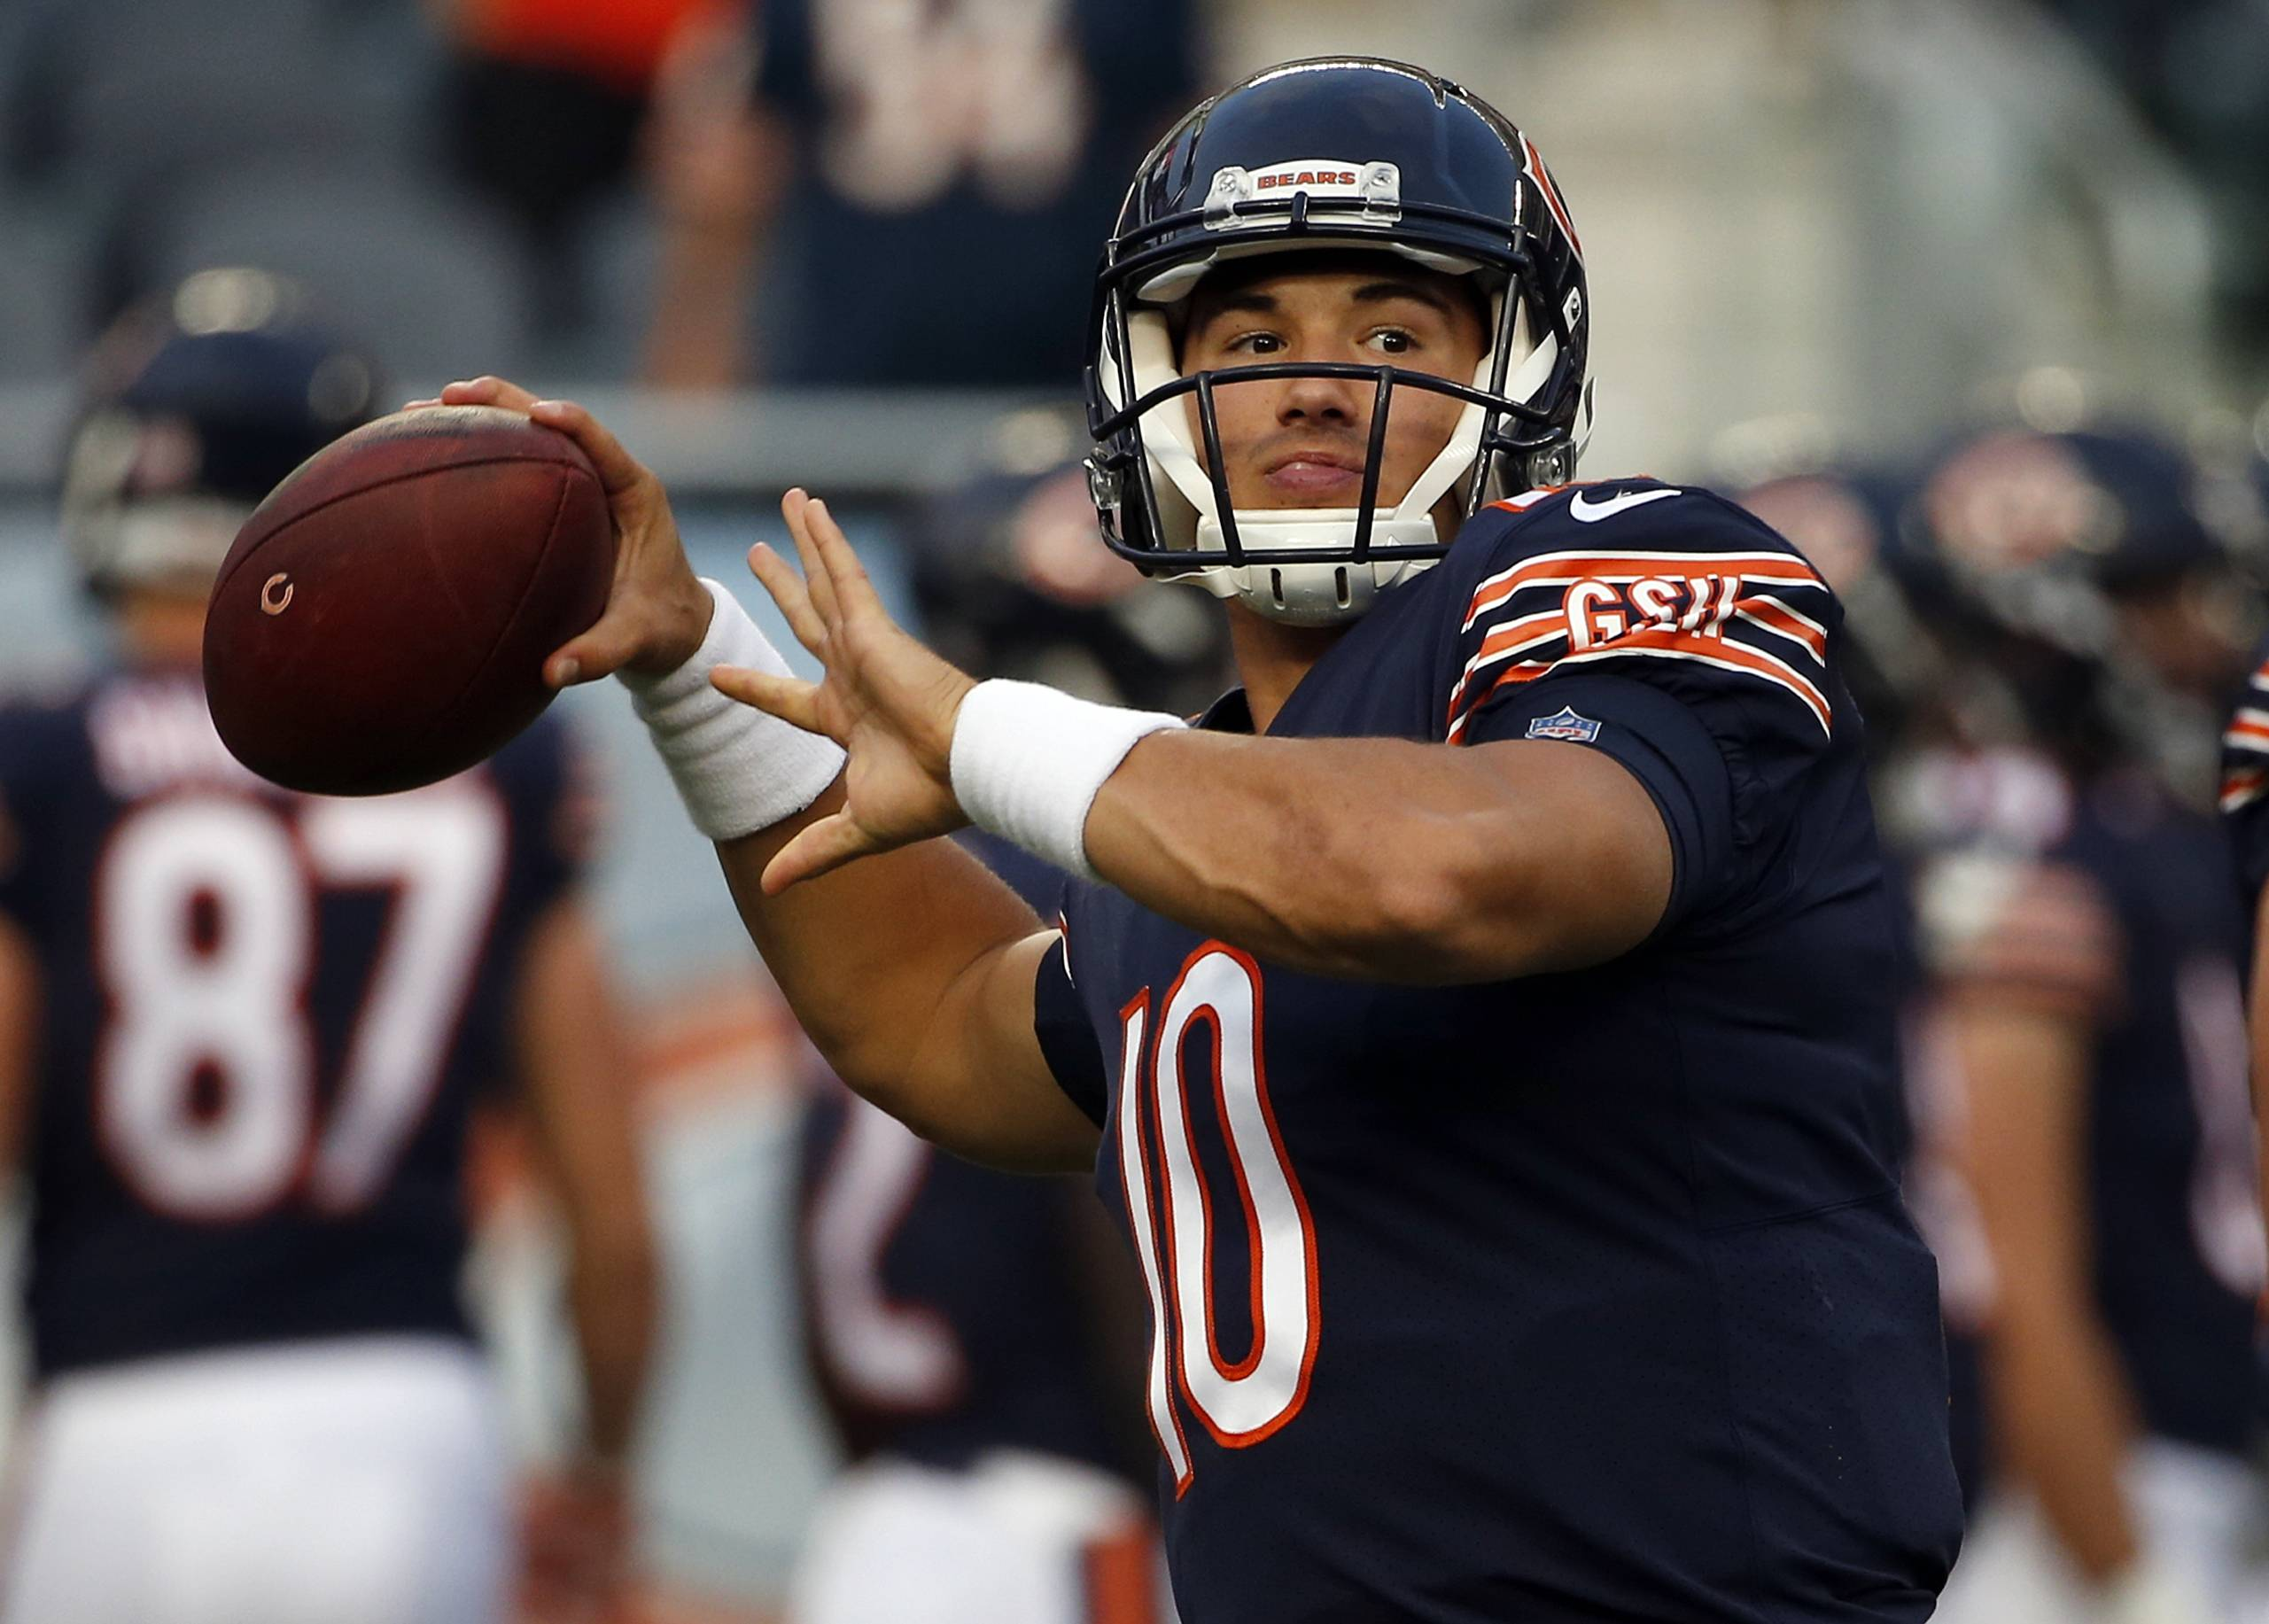 Is Mitch Trubisky ready to start? Chicago Bears are about to find out